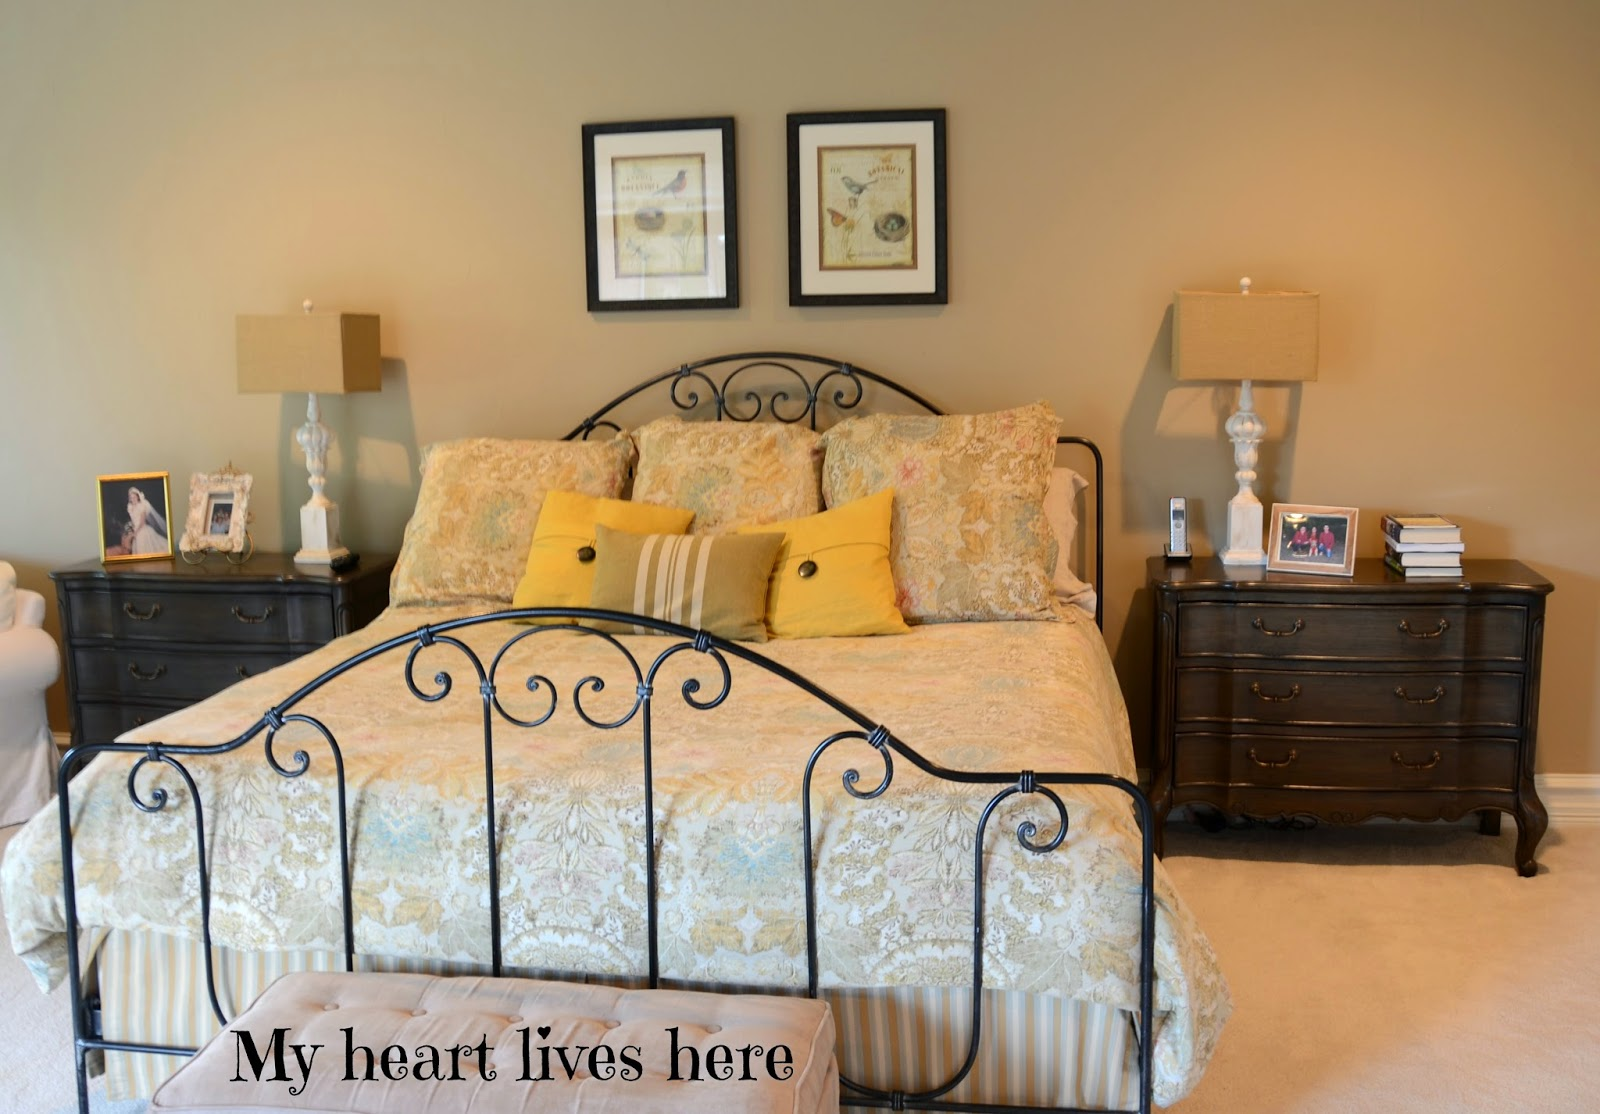 French Country Master Bedroom - My Heart Lives Here